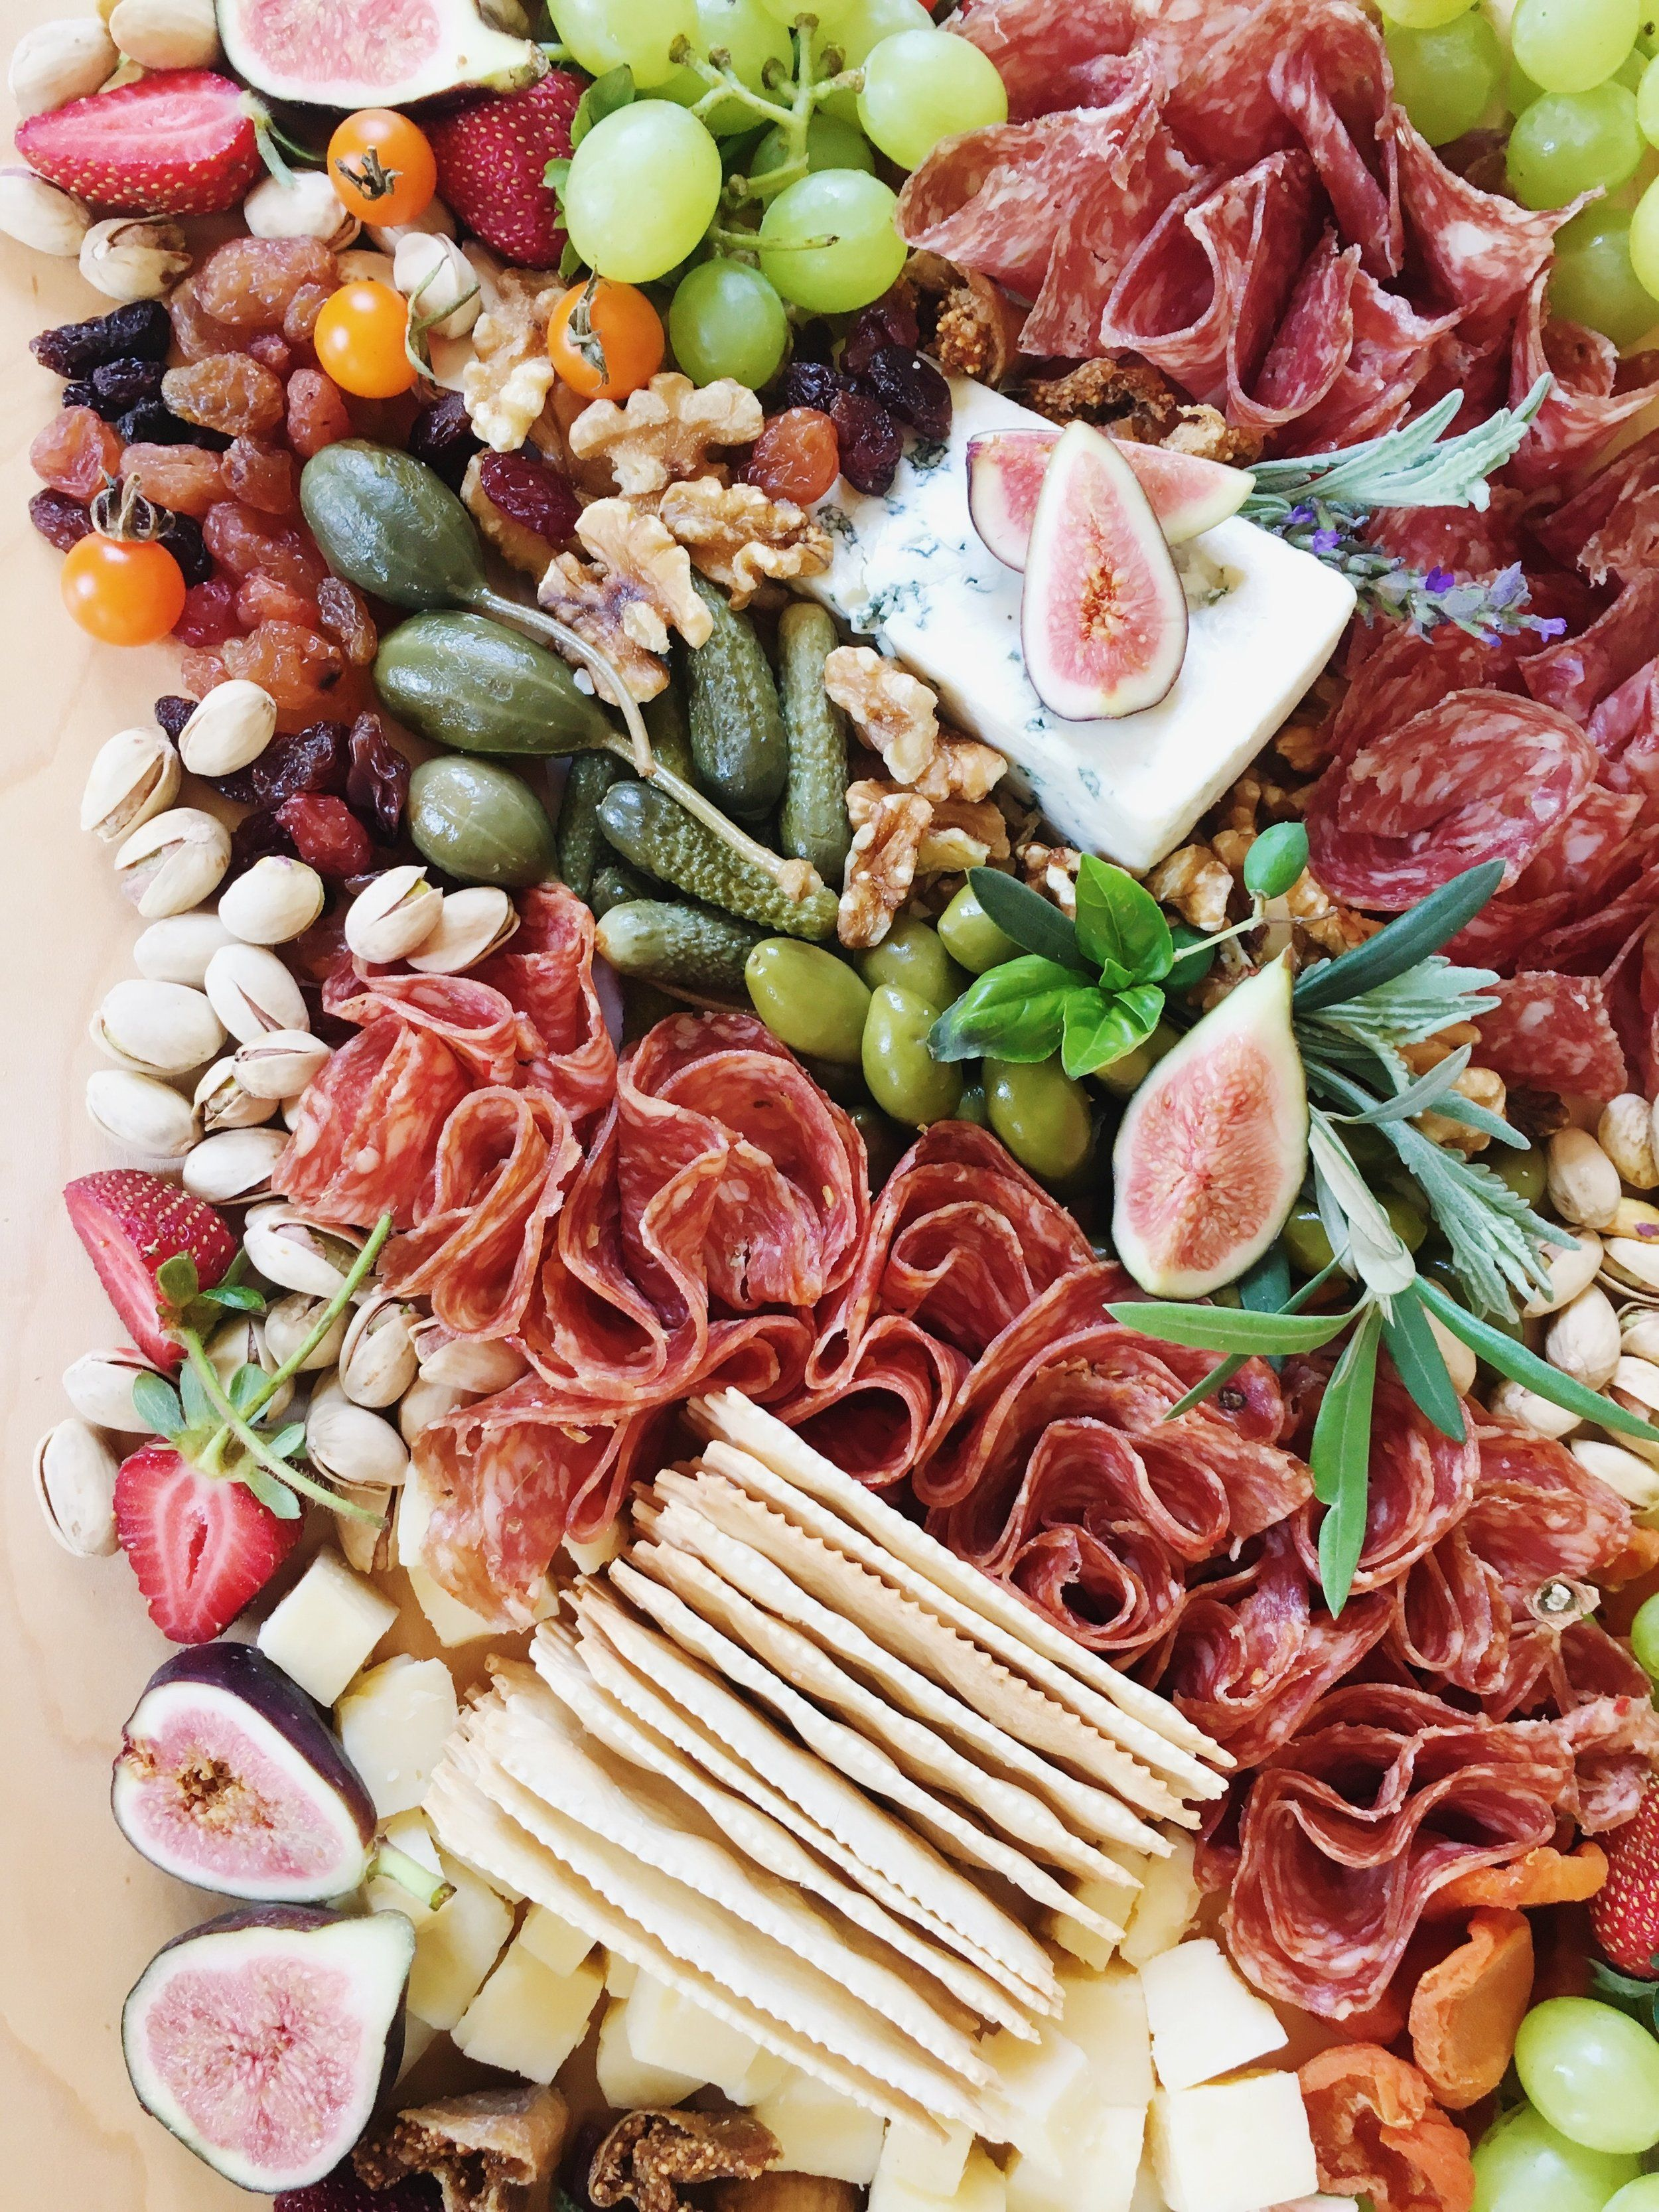 Gorgeous Colorful Charcuterie Board With Meats Figs Grapes Cheese Crackers And Berries Appetizer Recipes Charcuterie And Cheese Board Food Platters